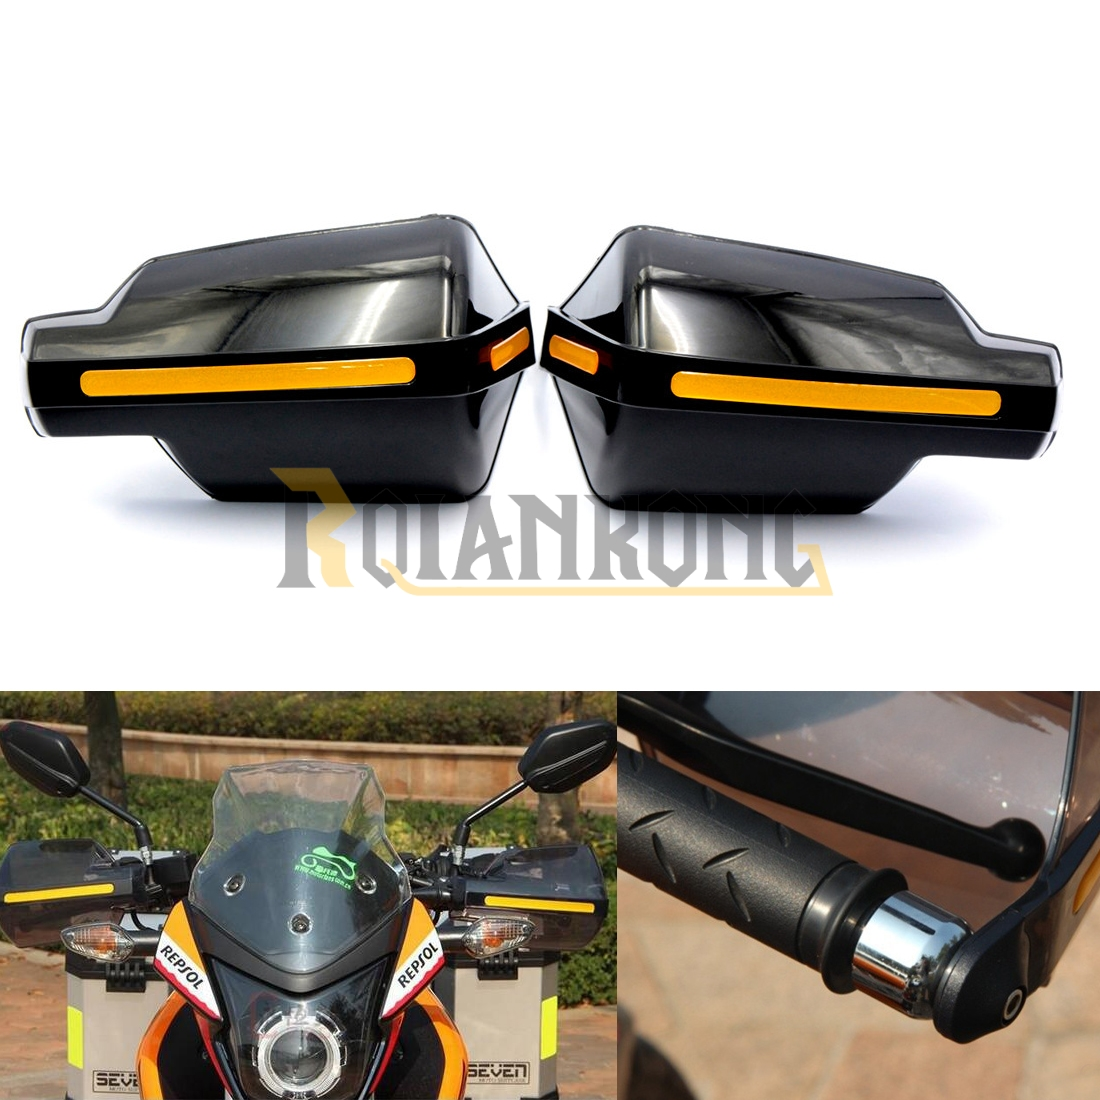 Motorcycle wind shield Brake lever hand guard For BMW K1600 GT GTL R1200GS R1200R R1200RT R1200S with Hollow Handle bar 4pcs set smoke sun rain visor vent window deflector shield guard shade for hyundai tucson 2016